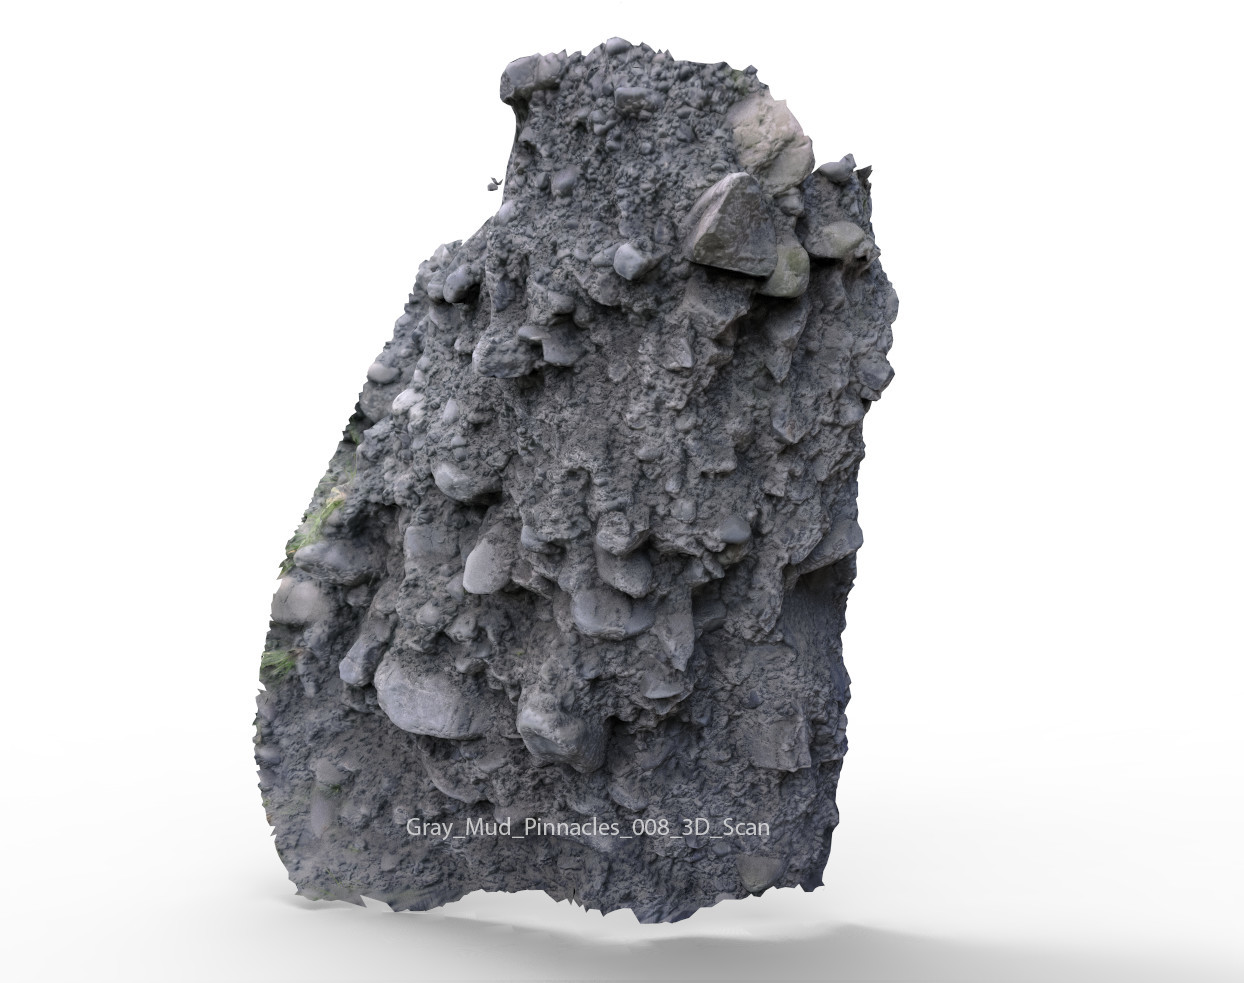 Anton tenitsky gray mud pinnacles 008 3d scan